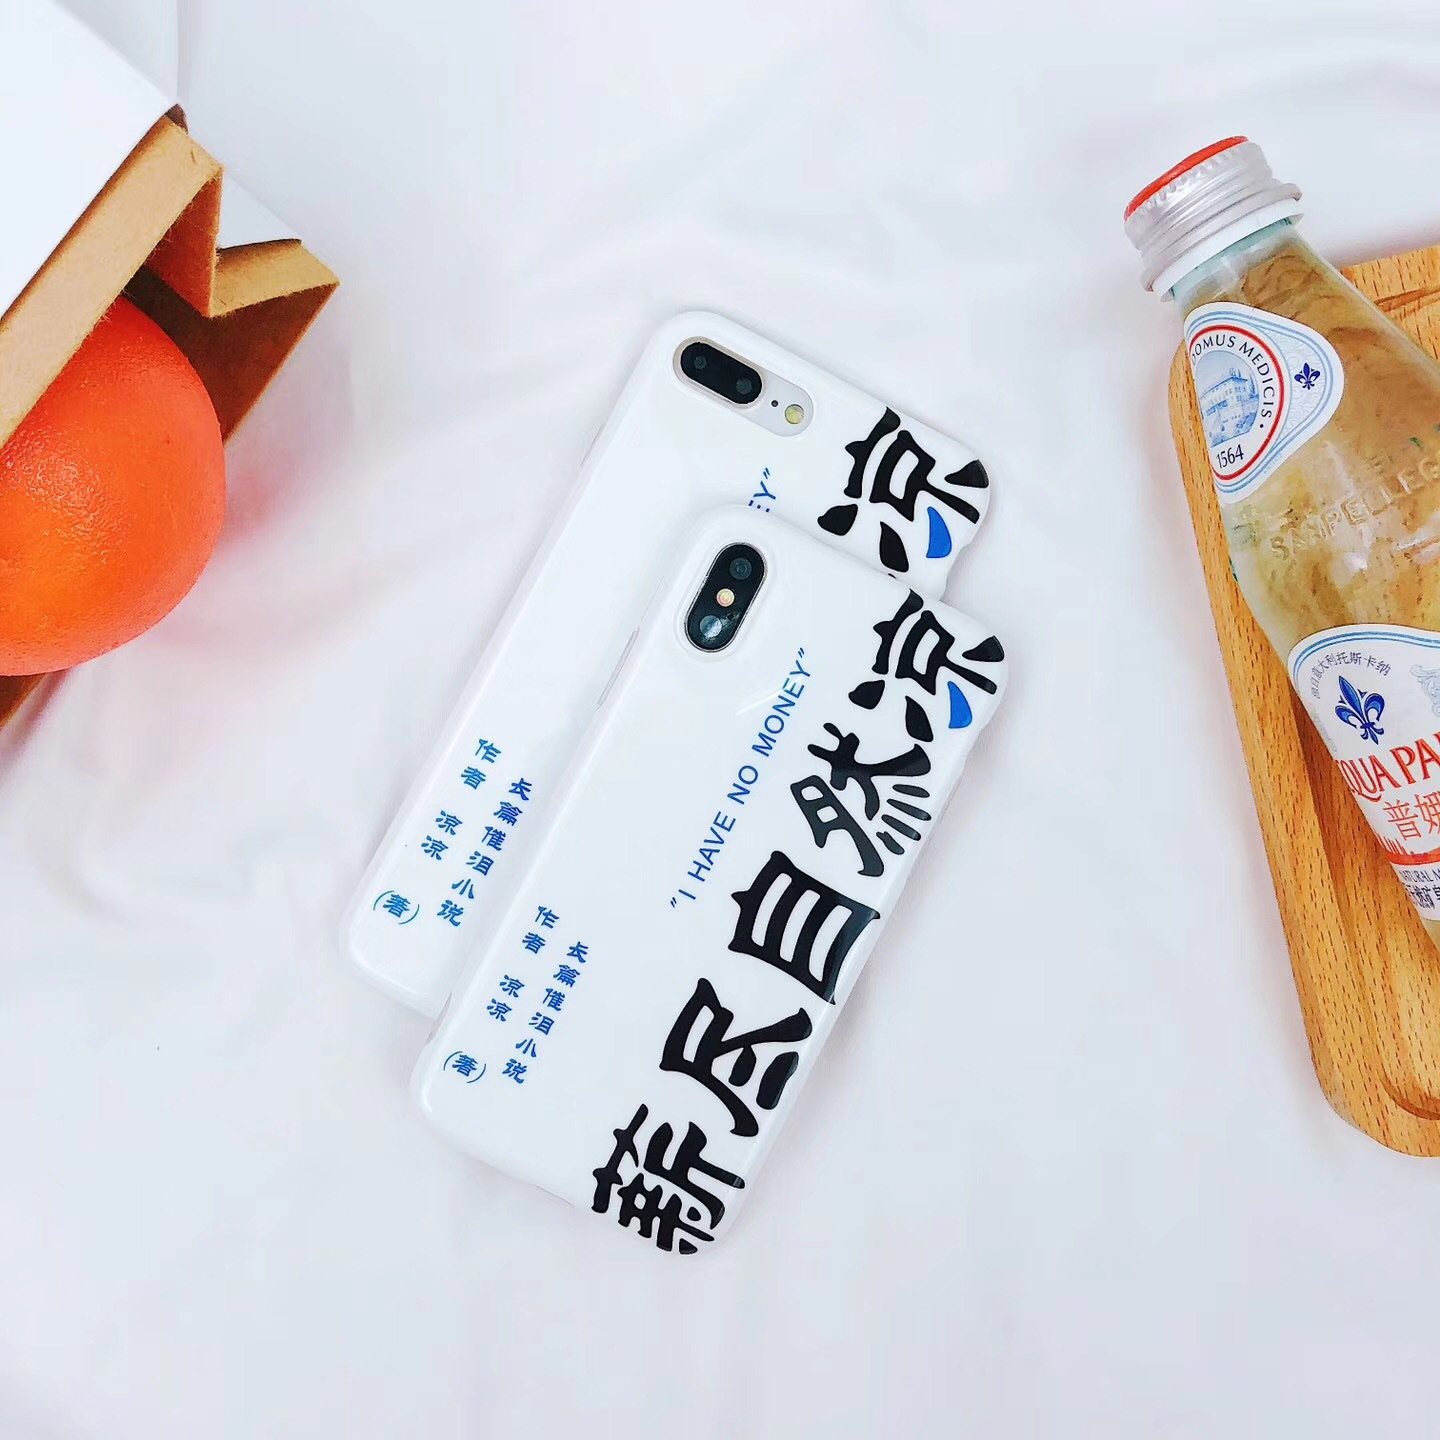 Spoof text Pay as natural cool iPhone7plus mobile phone case Apple 6s/X/8plus anti-fall soft shell set